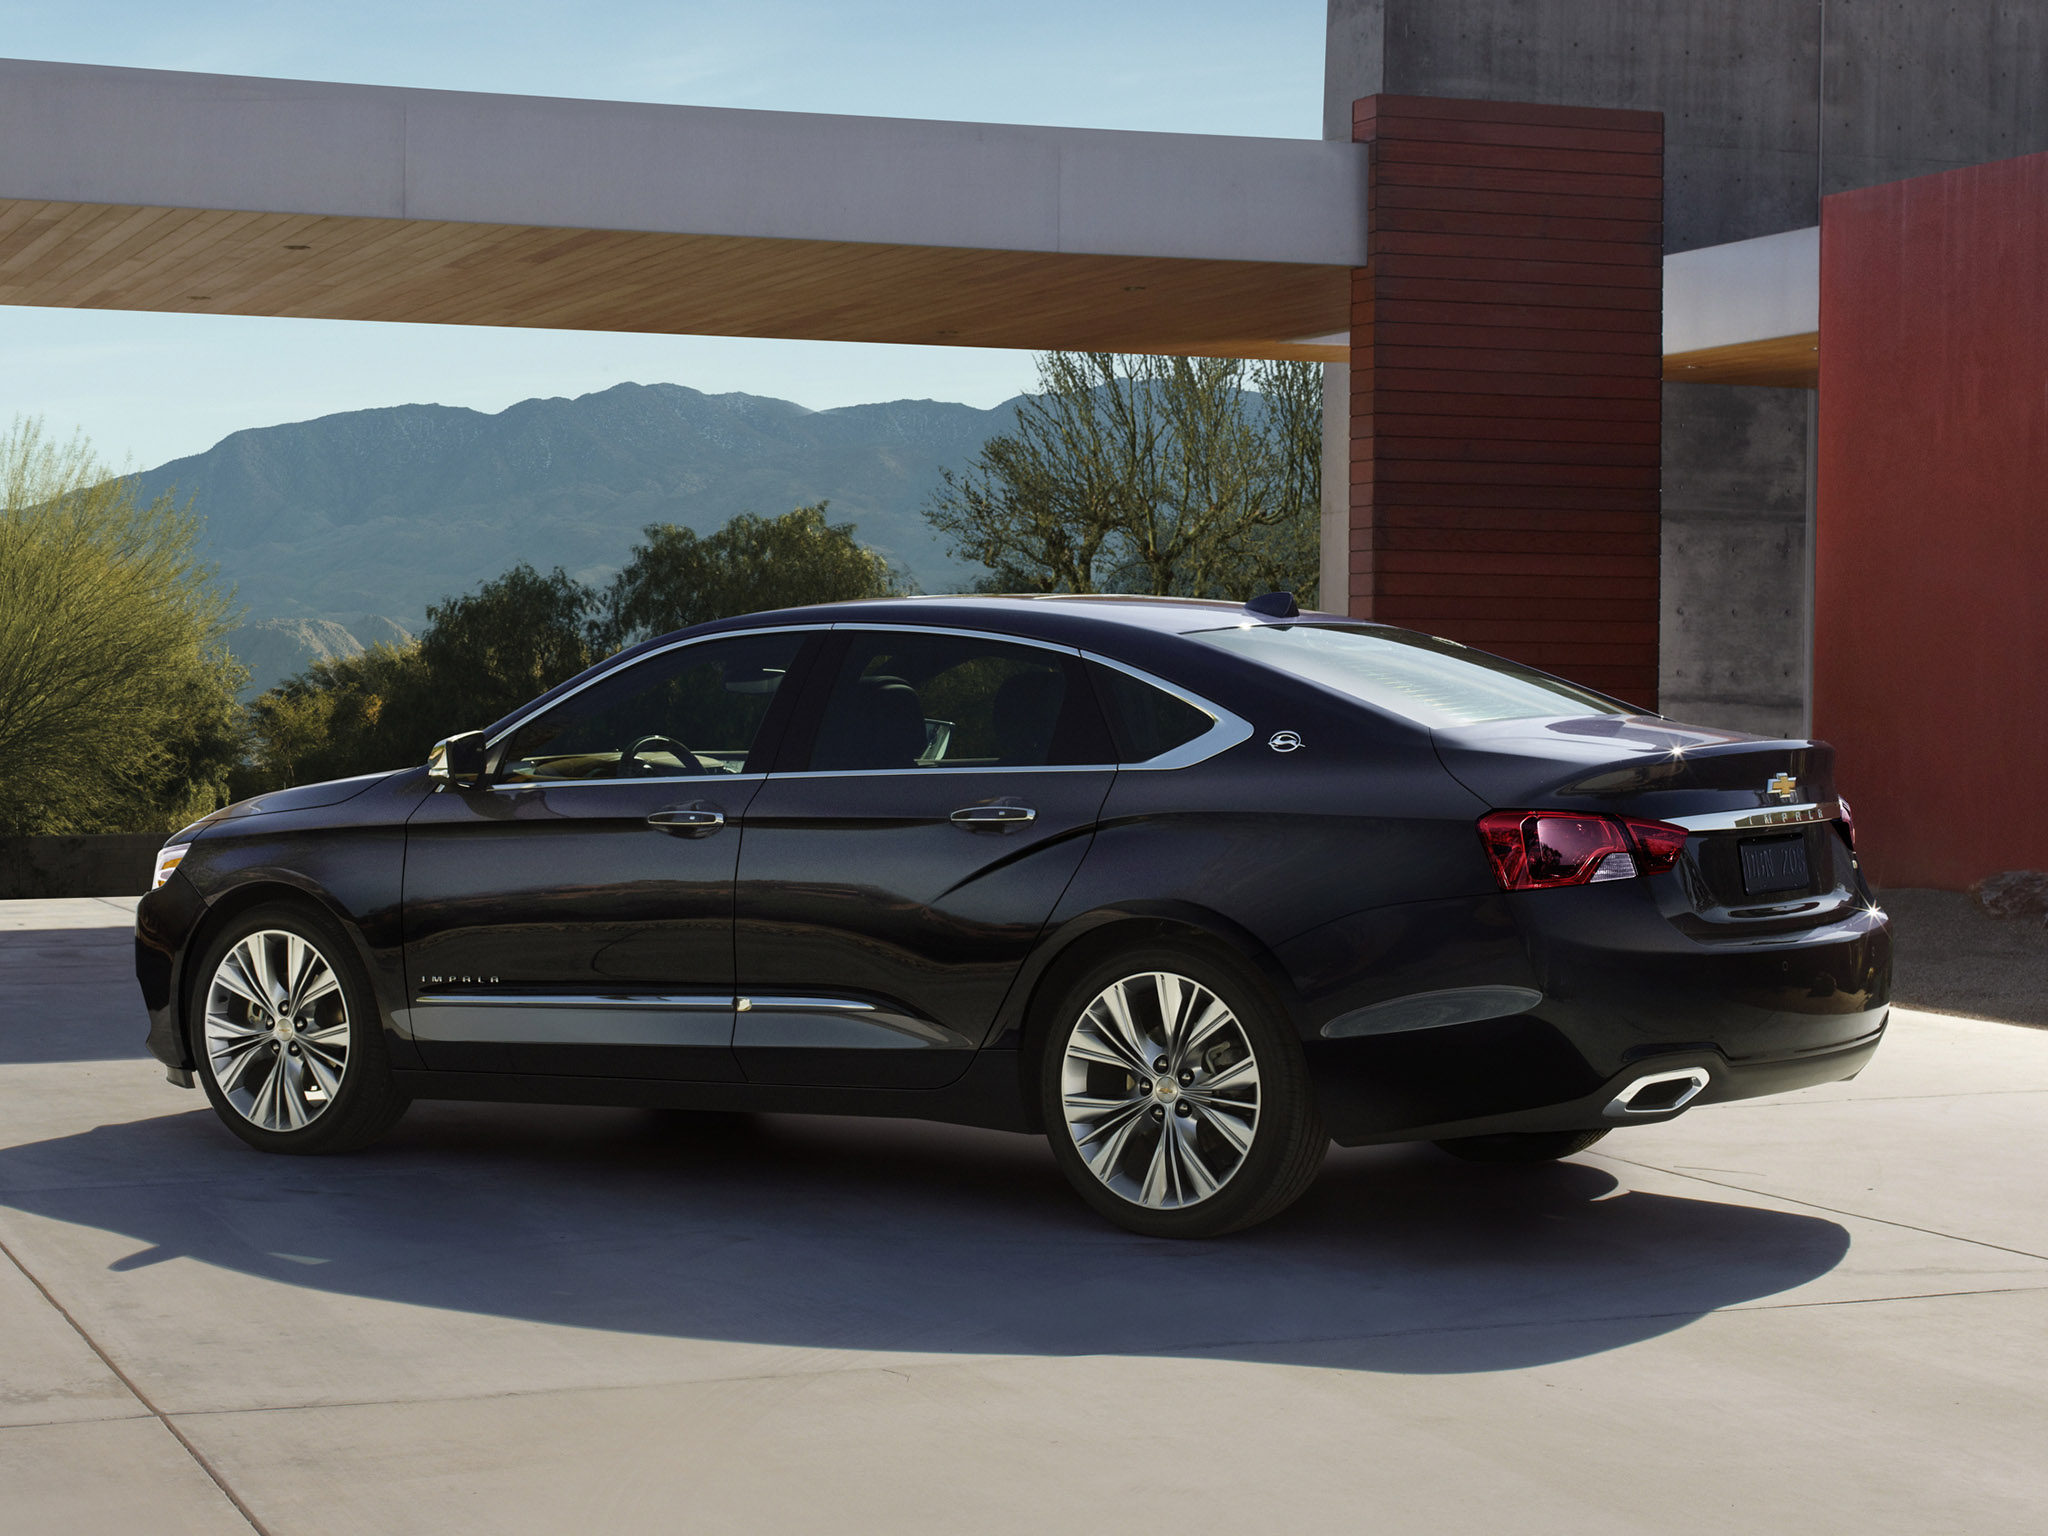 2012 Chevrolet Impala – pictures, information and specs - Auto